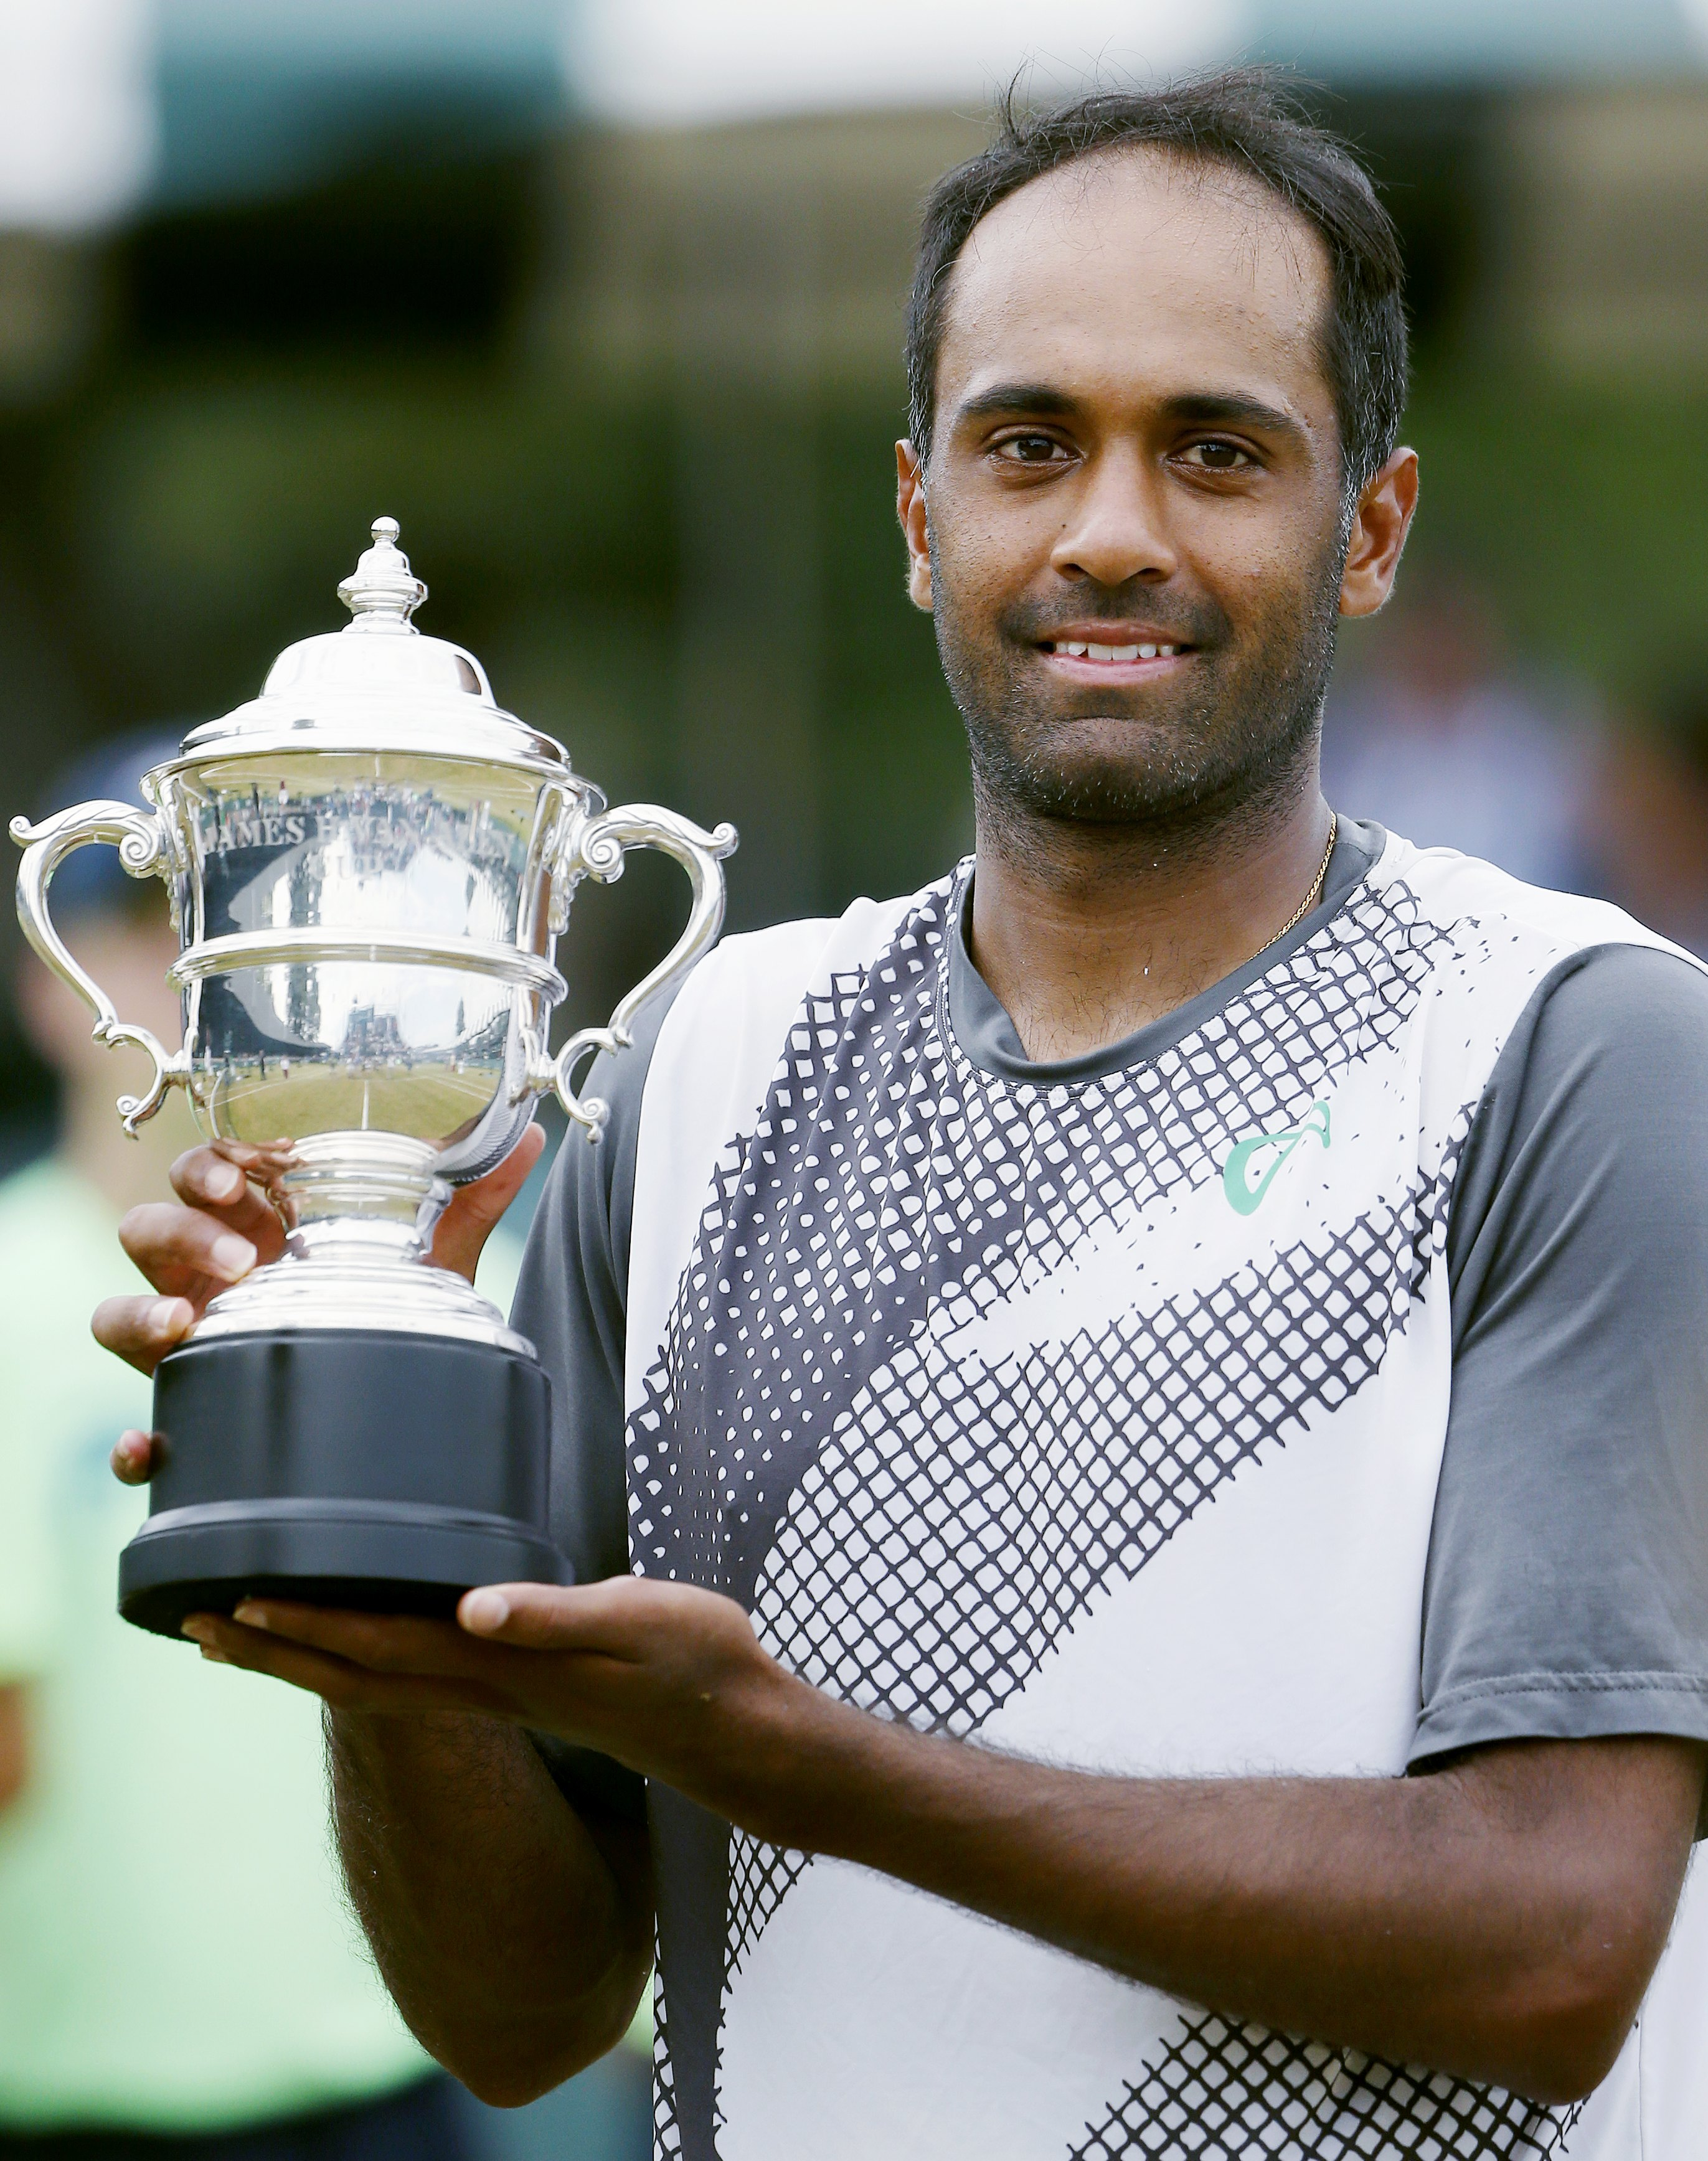 Rajeev Ram holds the trophy after defeating Ivo Karlovic, of Croatia, in the Tennis Hall of Fame Championship final in Newport, R.I., Sunday, July 19, 2015. (AP Photo/Michael Dwyer)